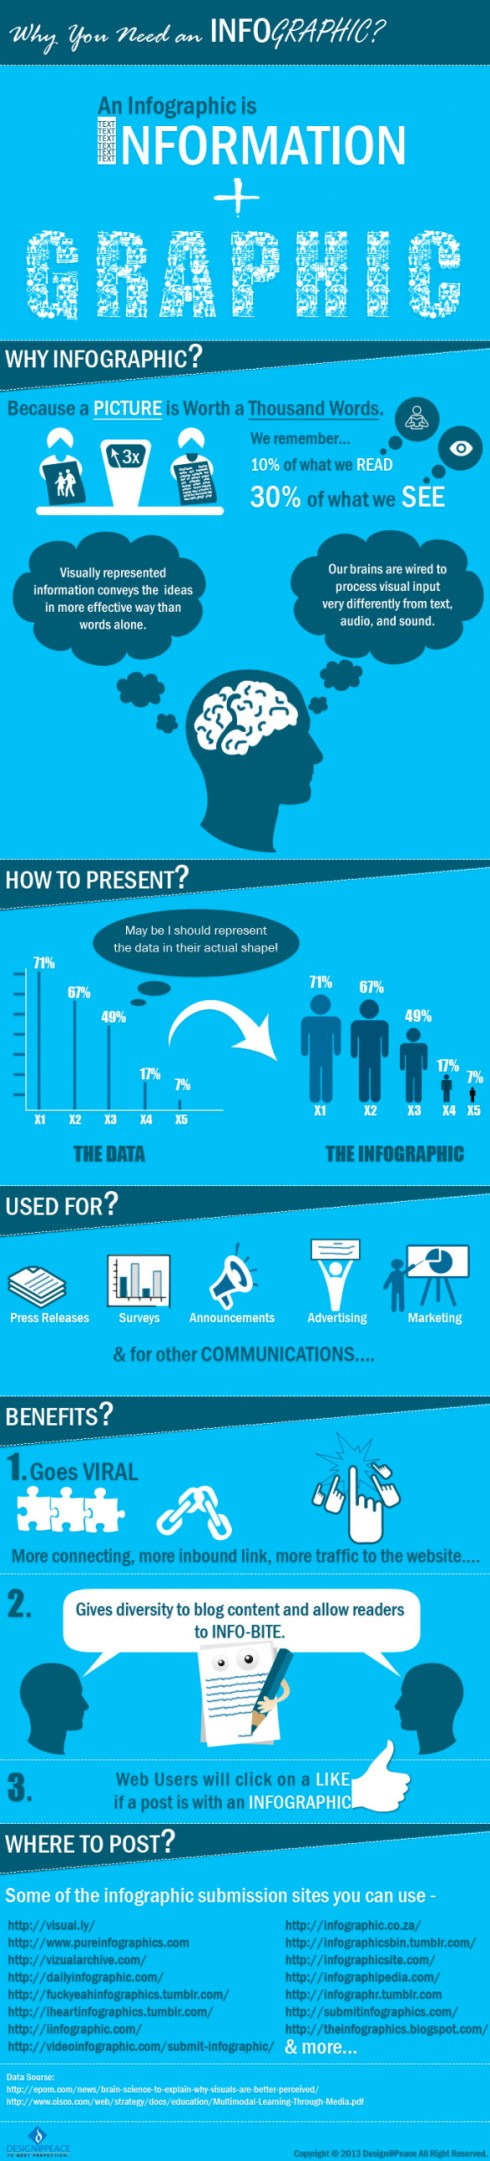 Why You Need an Infographic